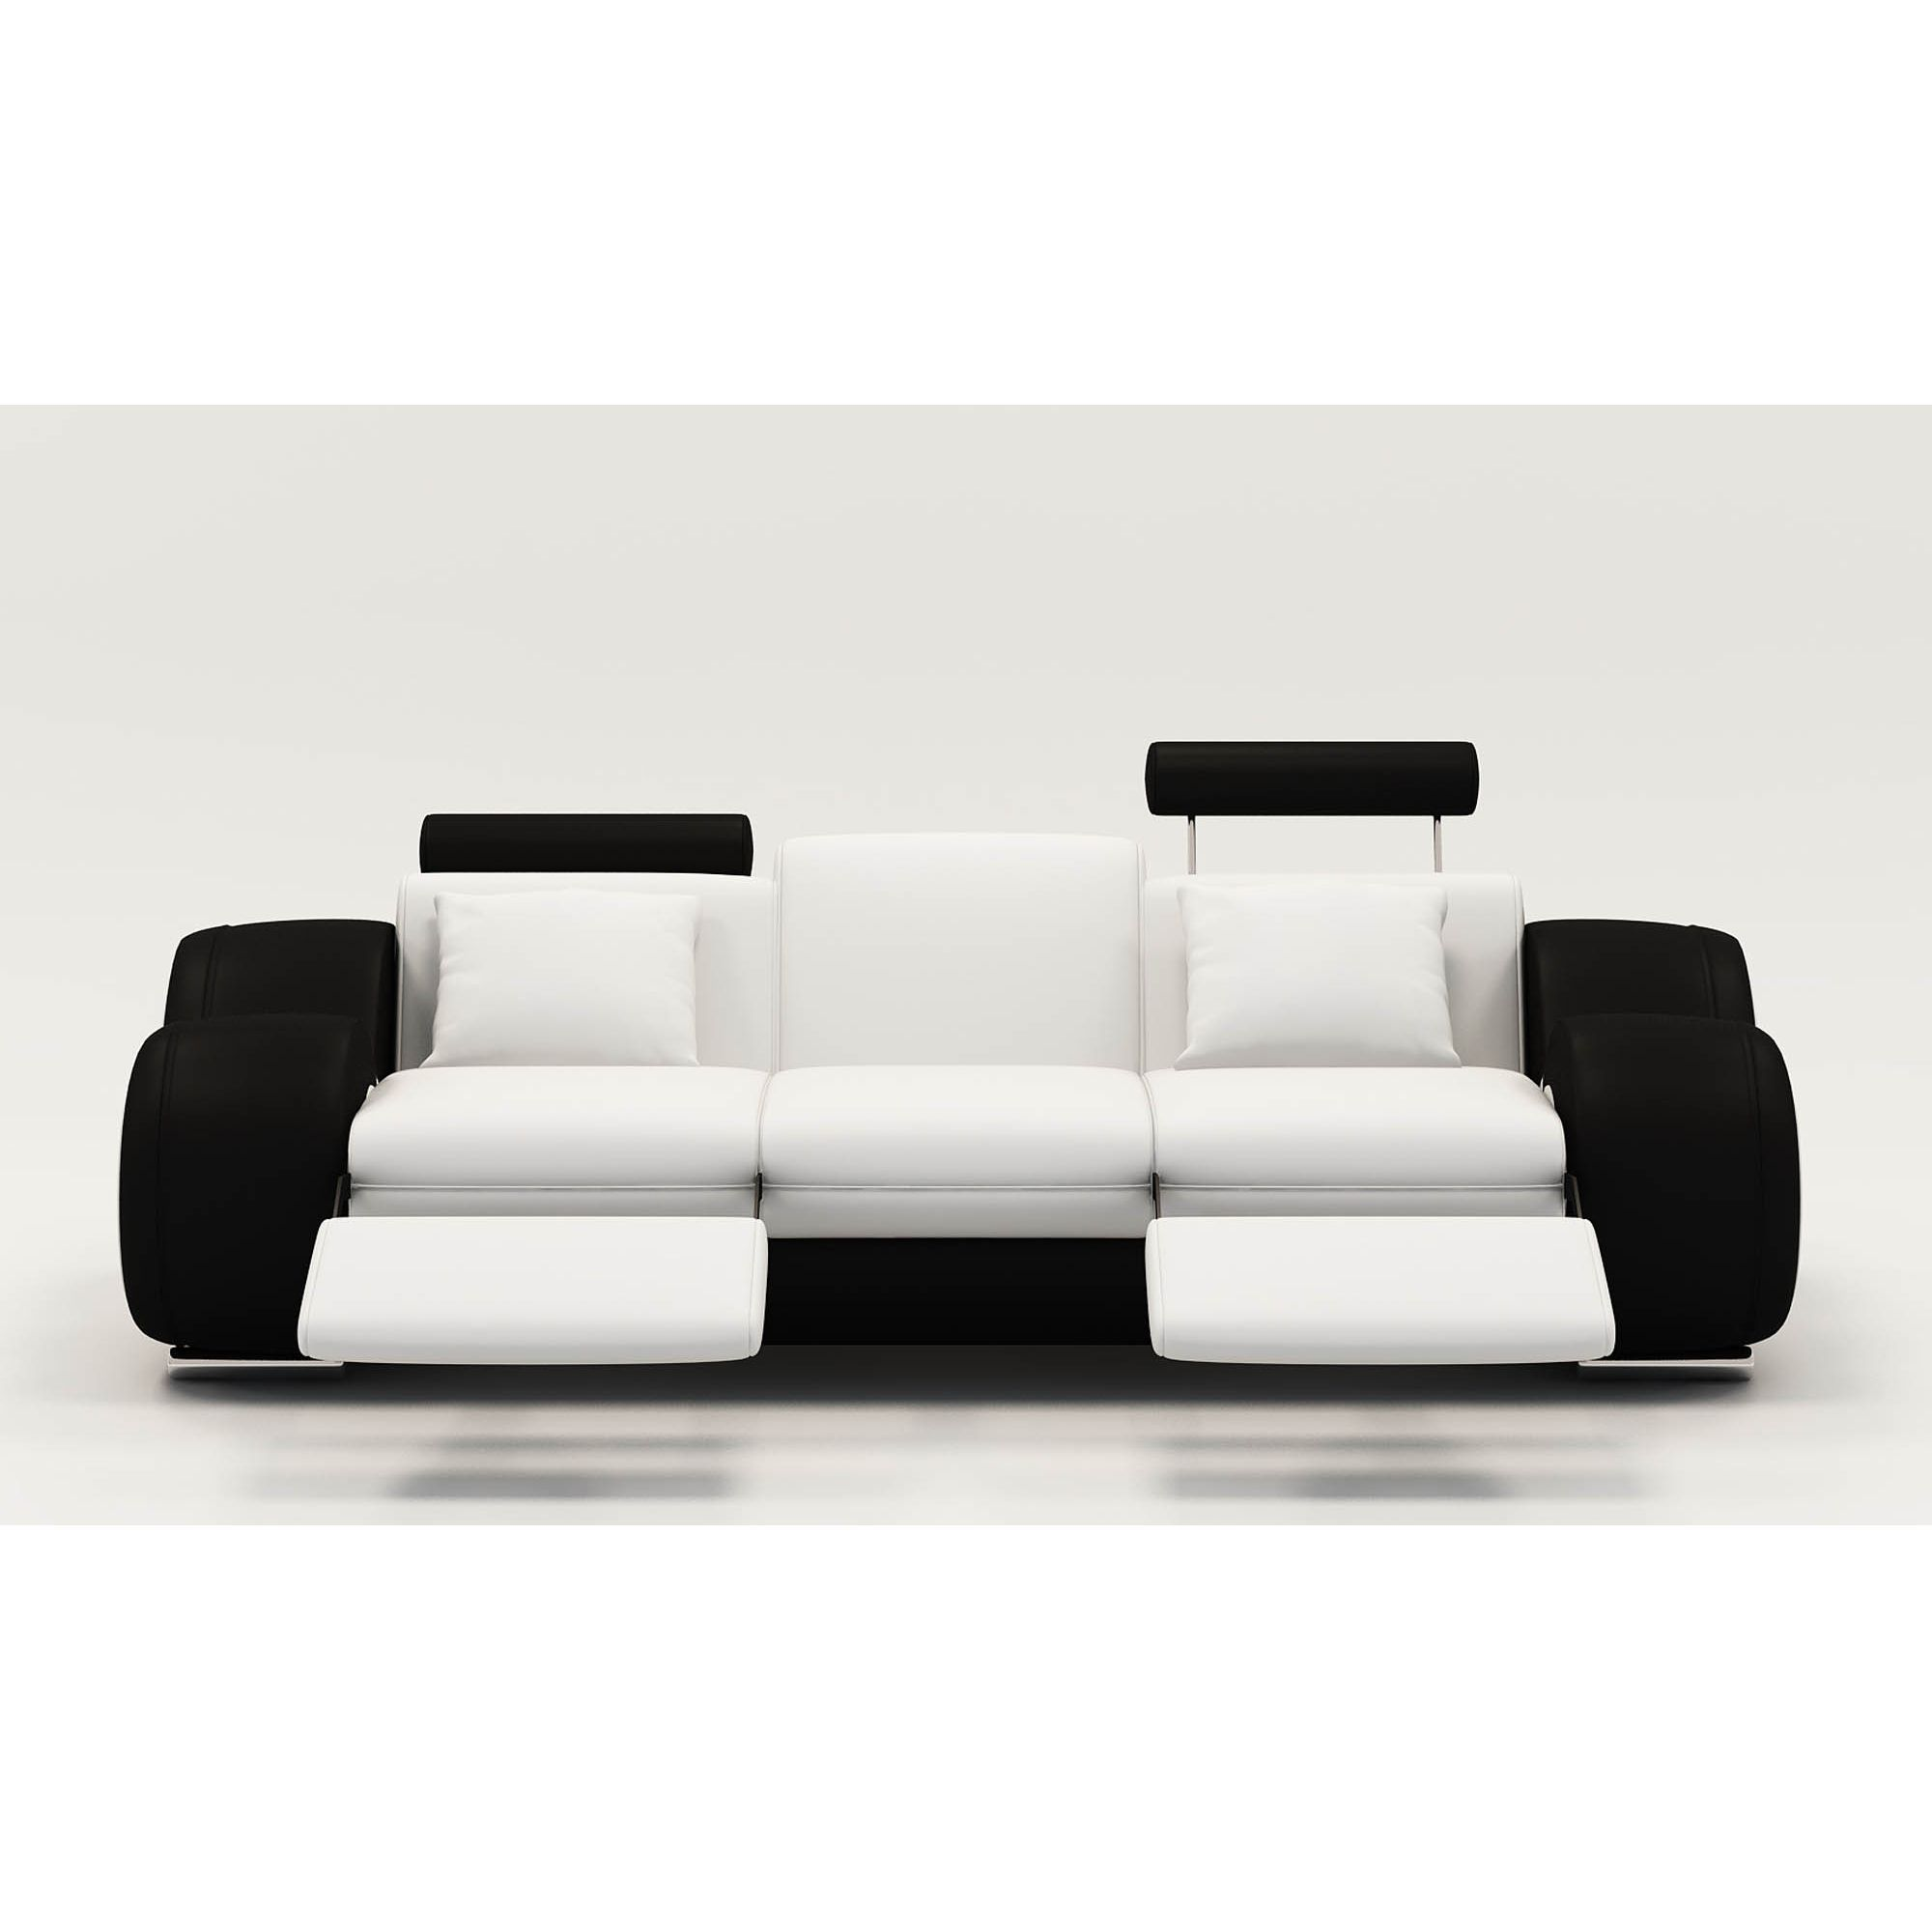 Deco in paris canape design 3 places cuir blanc et noir for Canape noir et blanc design